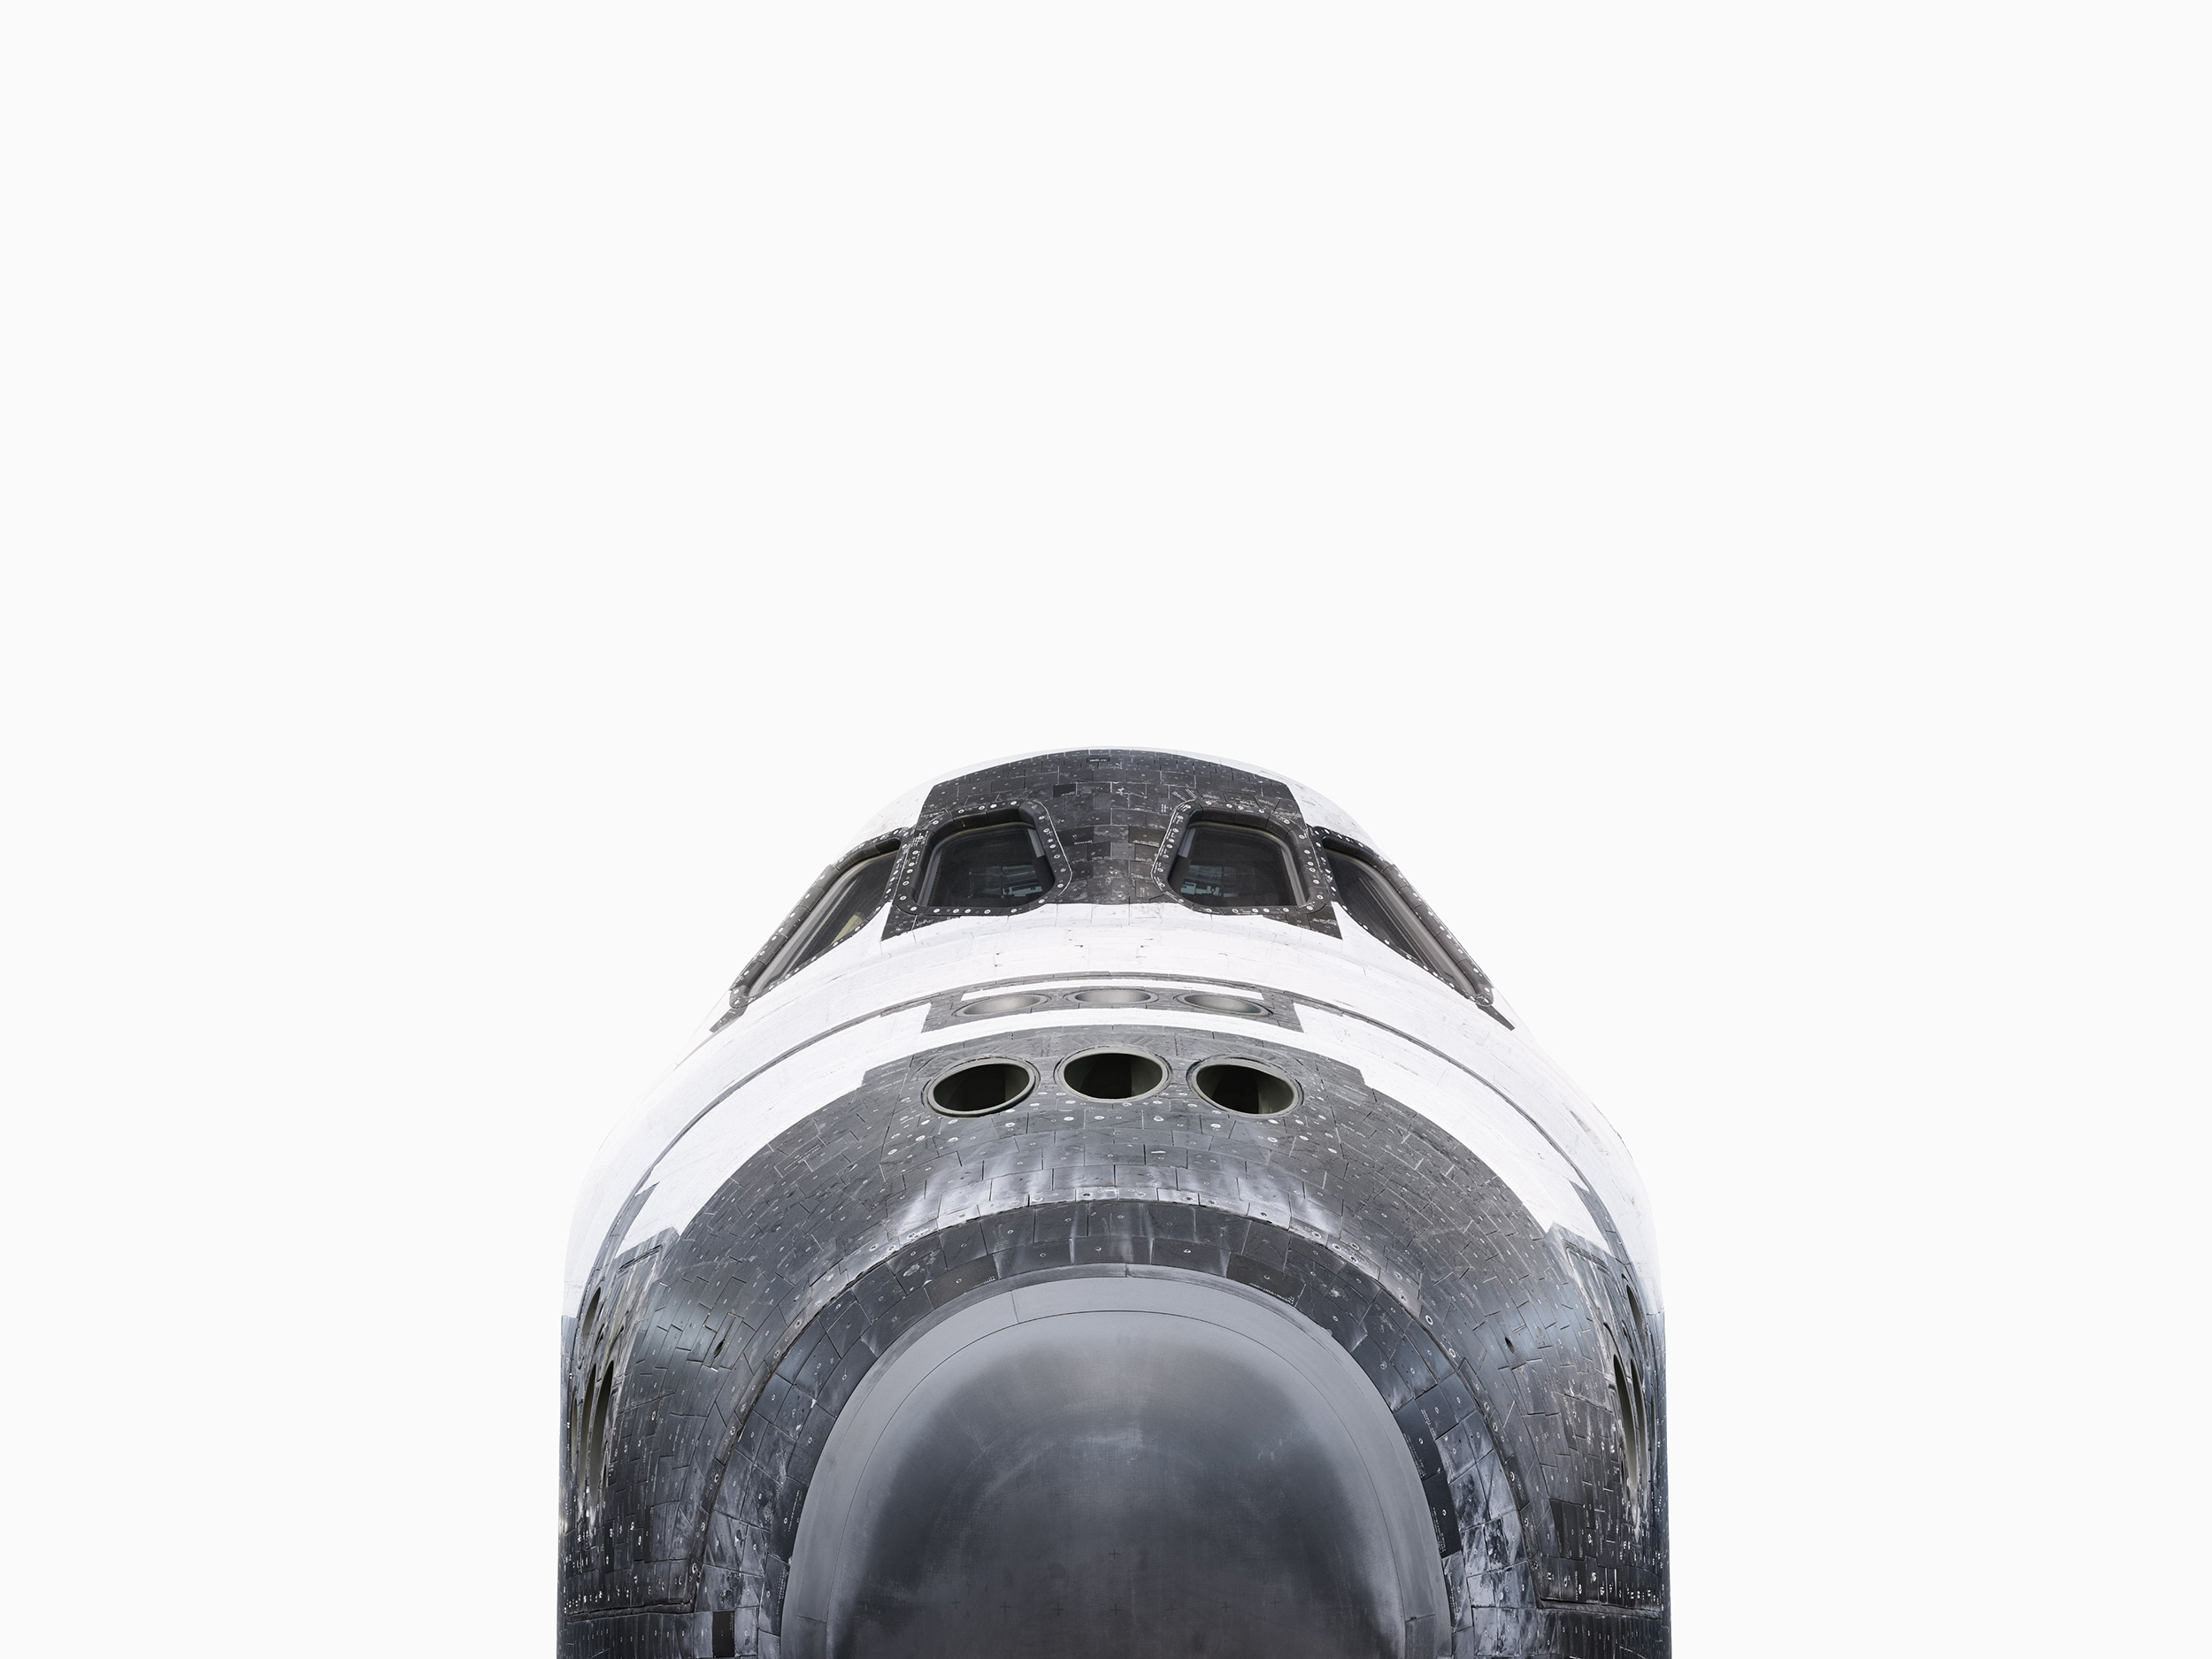 SPACE SHUTTLE DISCOVERY NOSE - Smithsonian National Air and Space Museum WASHINGTON.jpg